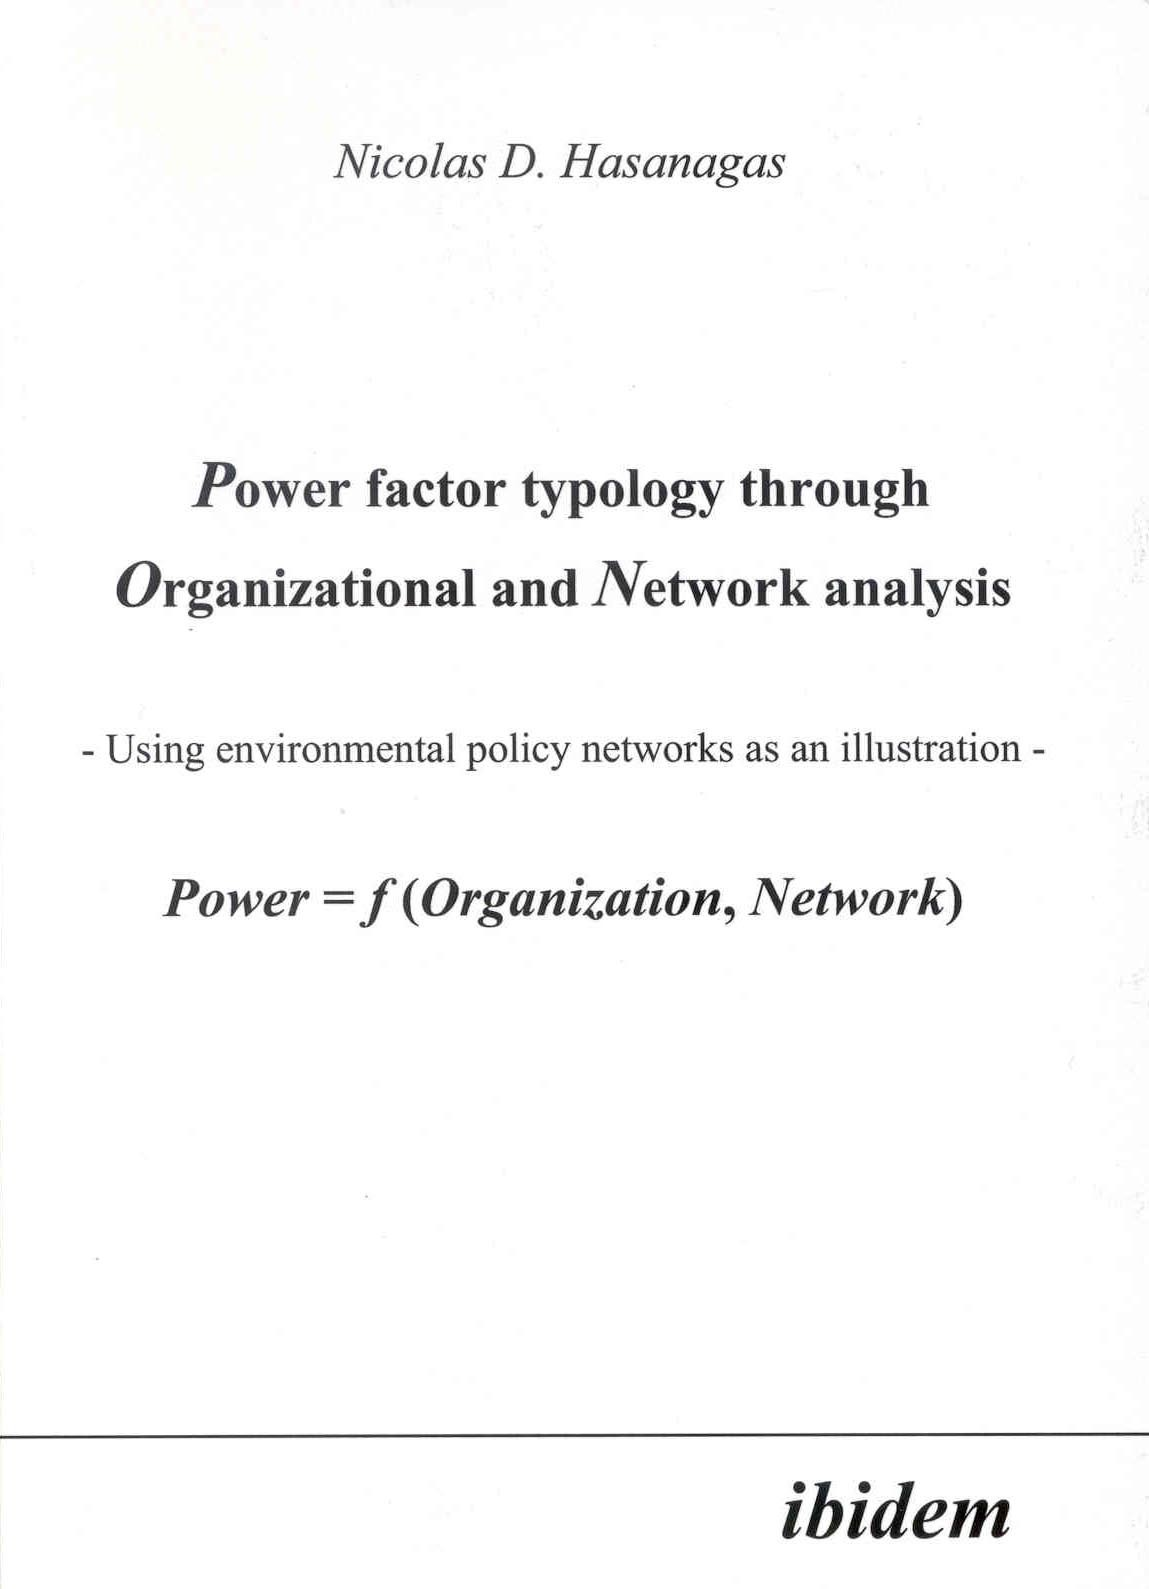 Power factor typology through Organizational and Network analysis